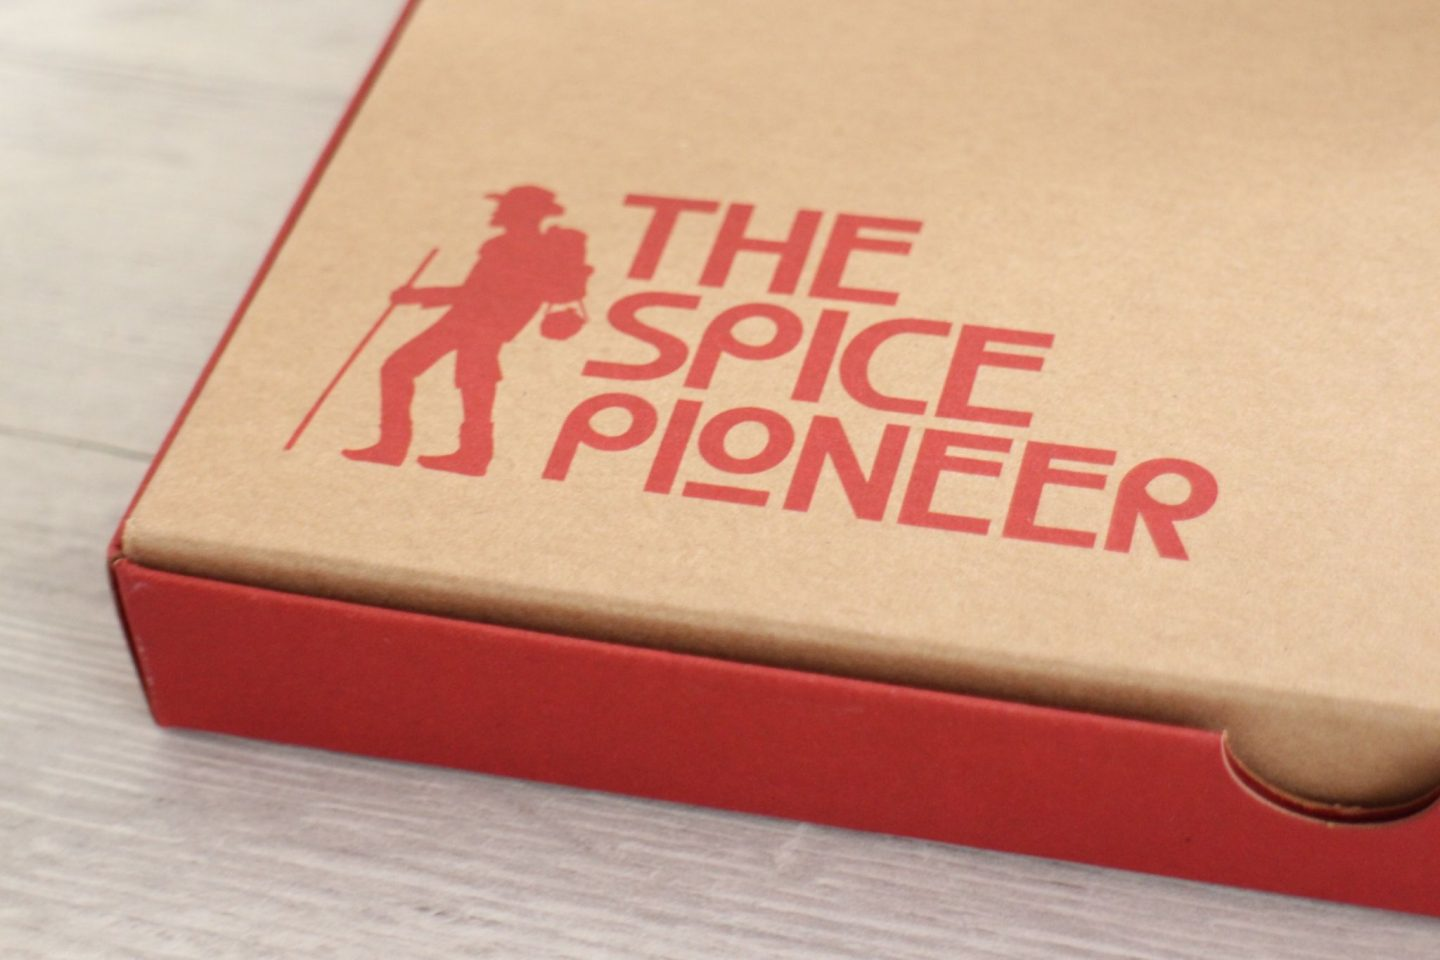 The Spice Pioneer